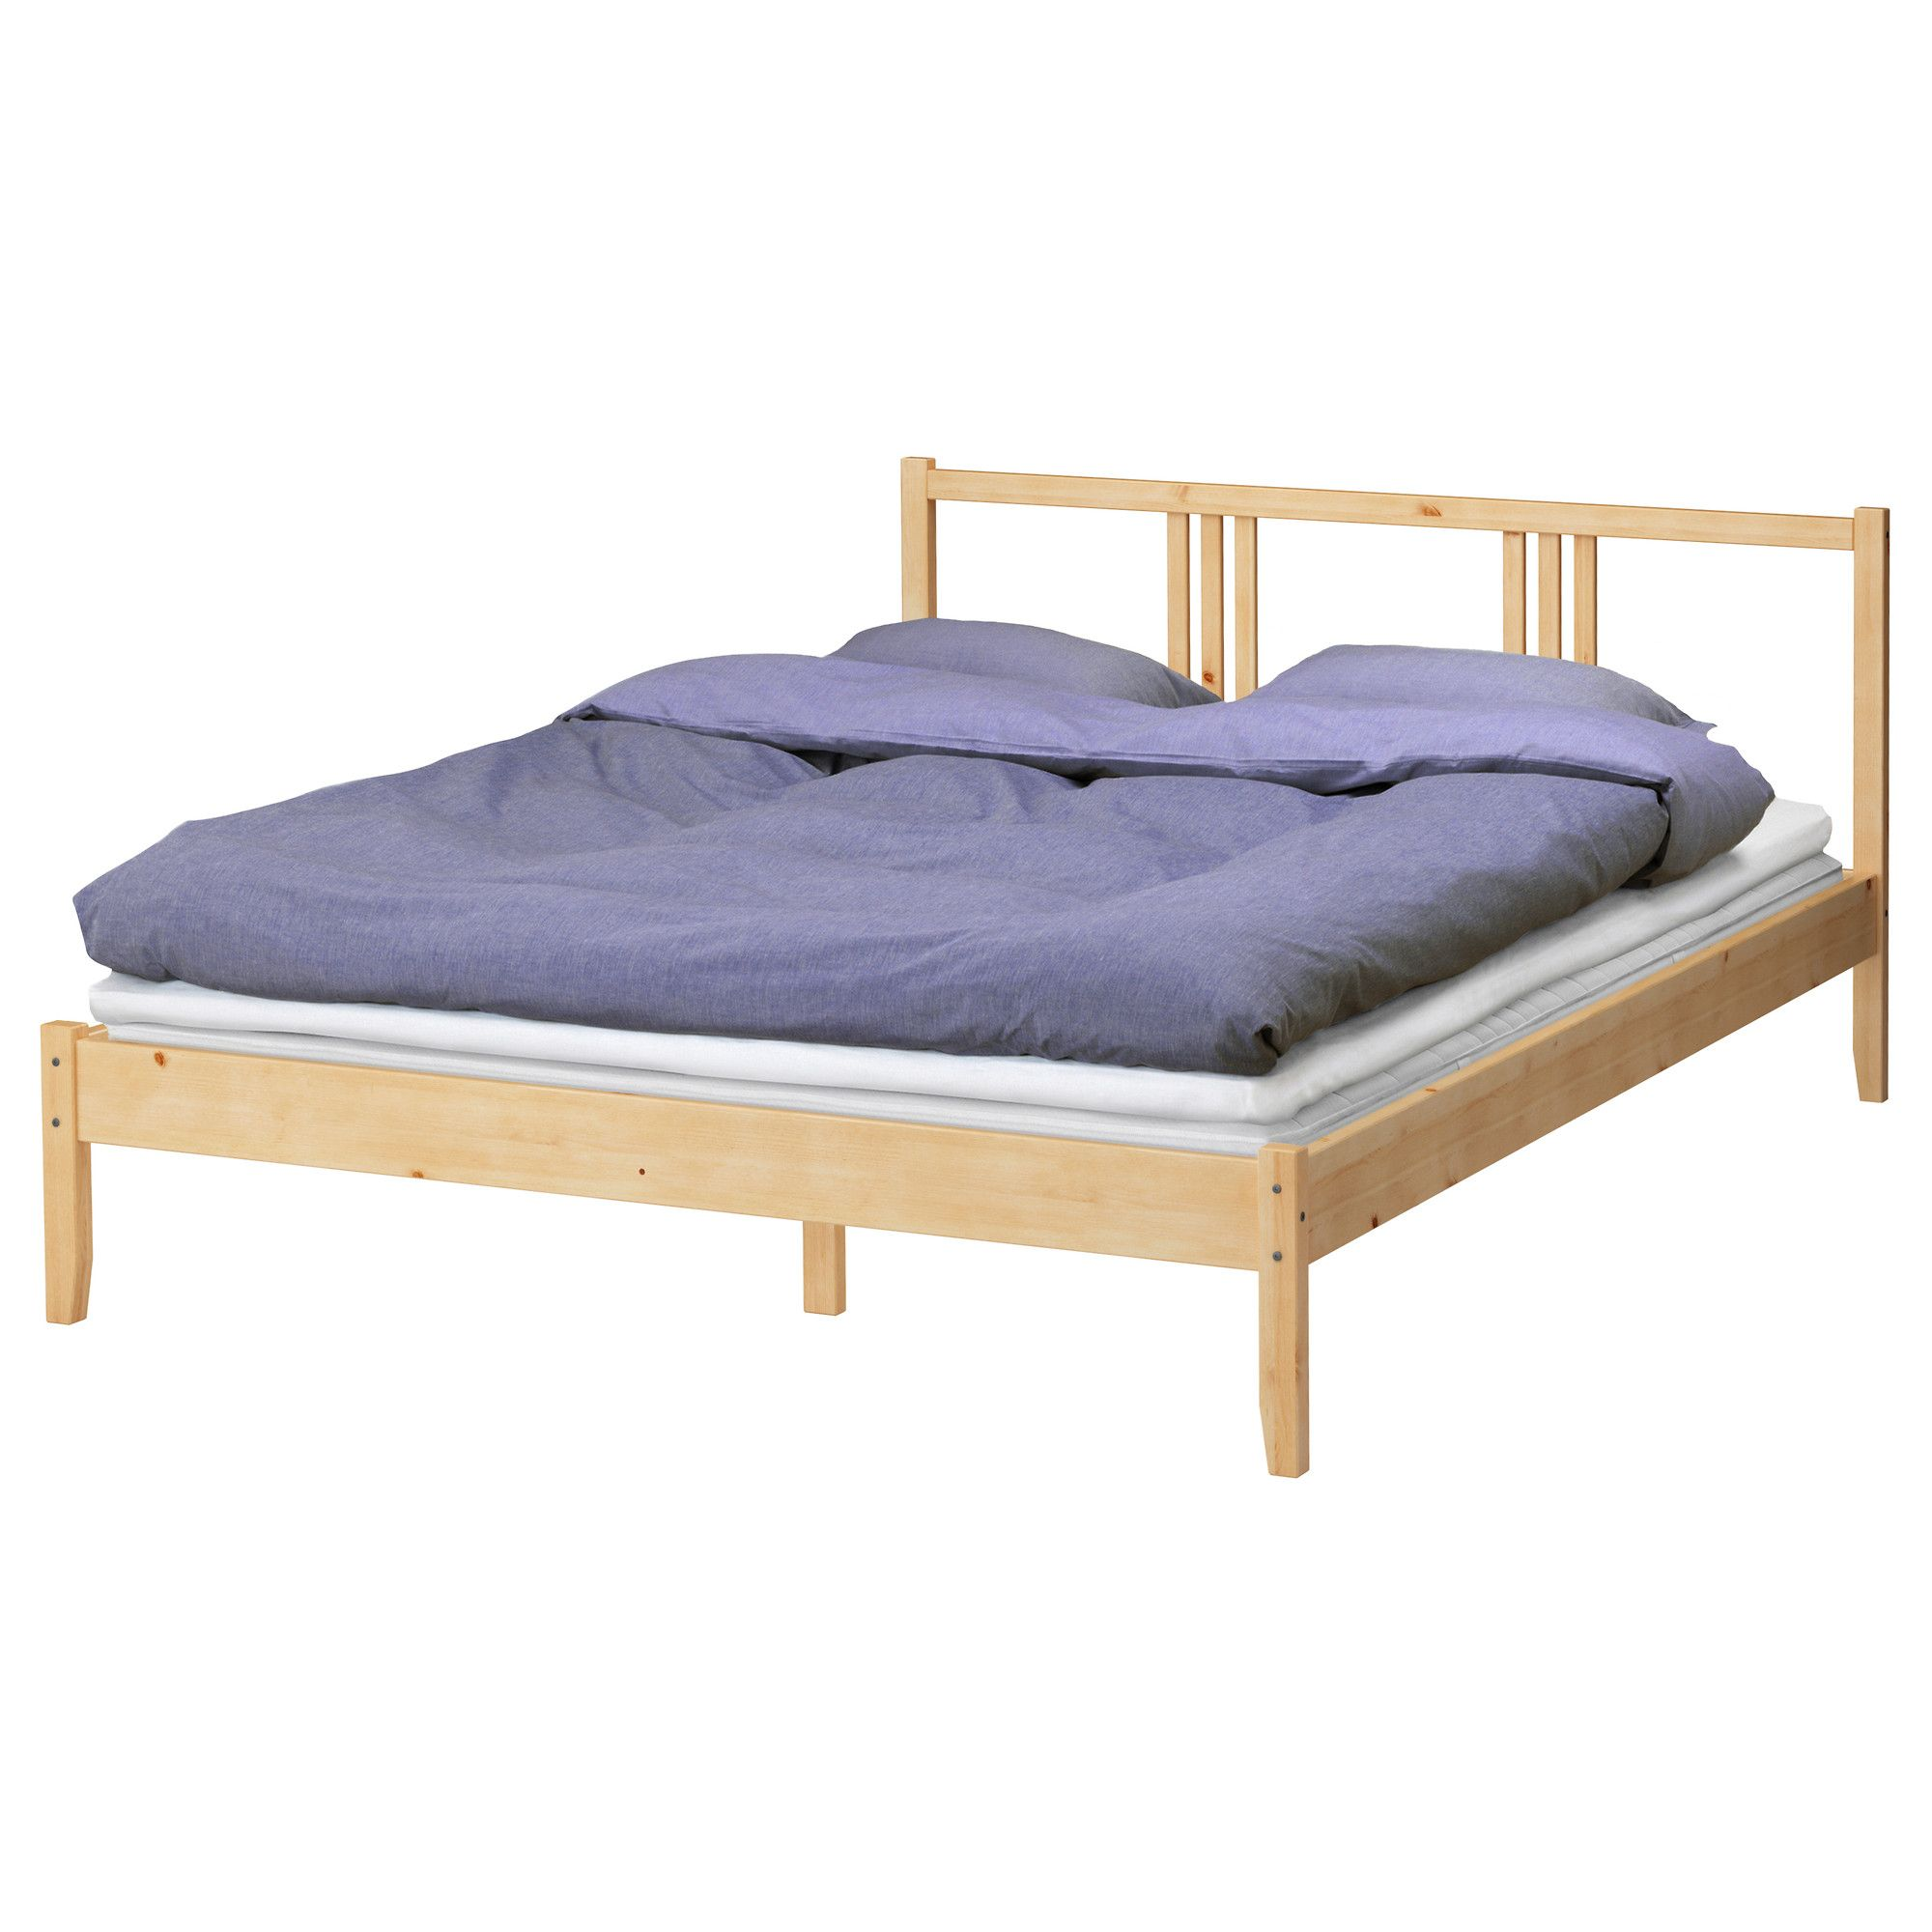 Us Furniture And Home Furnishings Ikea Bed Frames Cheap Bed Frame Ikea Full Bed Frame